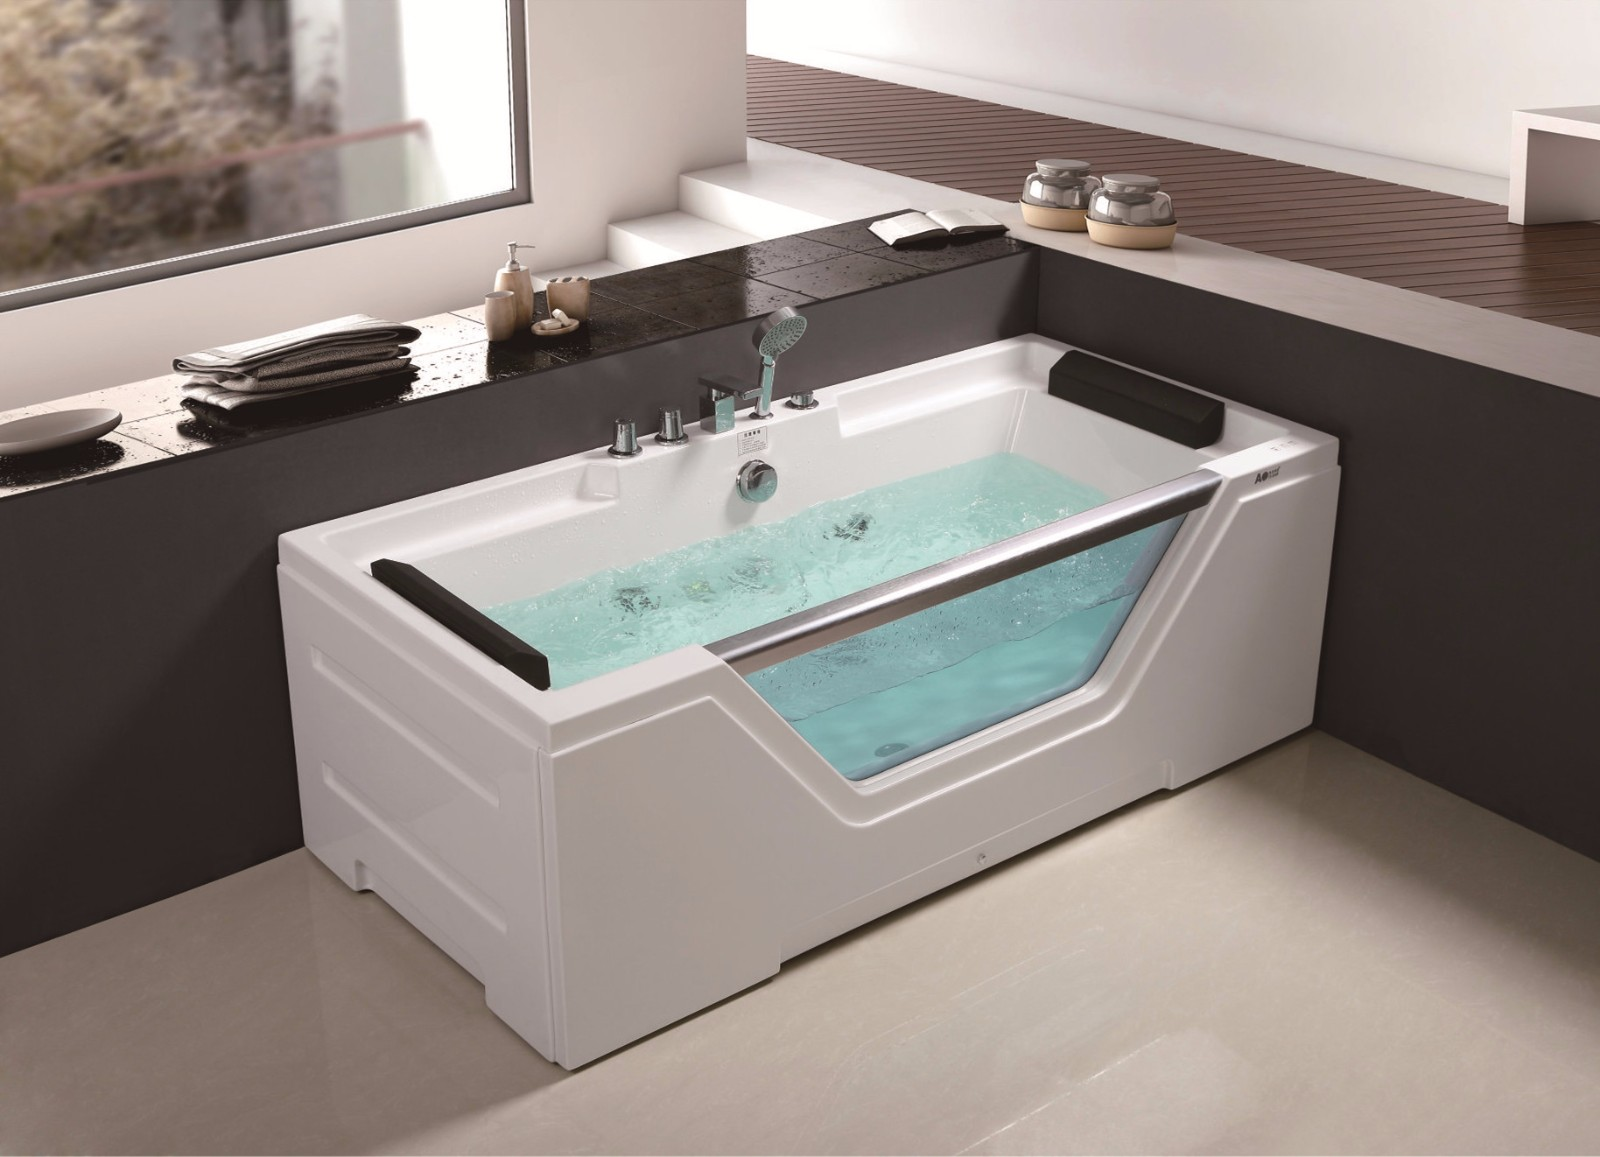 C-433 C-434 C-435 )  Simple Design Acrylic  Glass Jetted Hot Sale Tub Bathroom Bathtub with Cheap Price.jpg